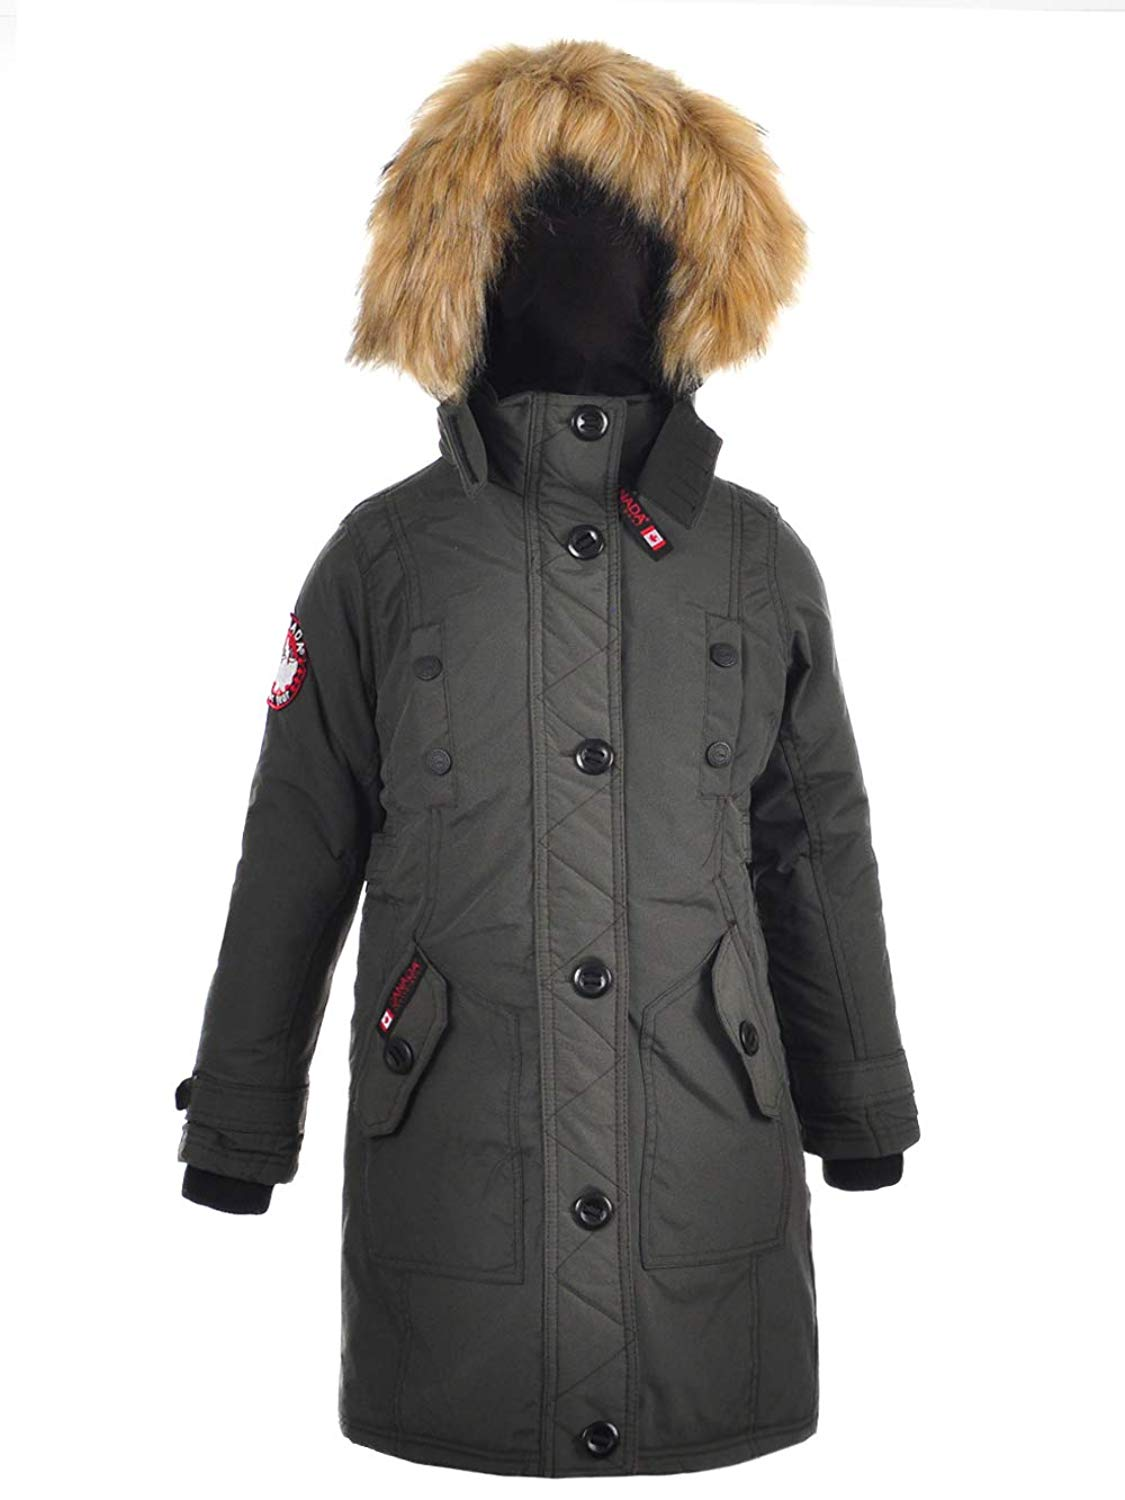 CANADA WEATHER GEAR Big Girls' Insulated Parka - Olive, 10-12